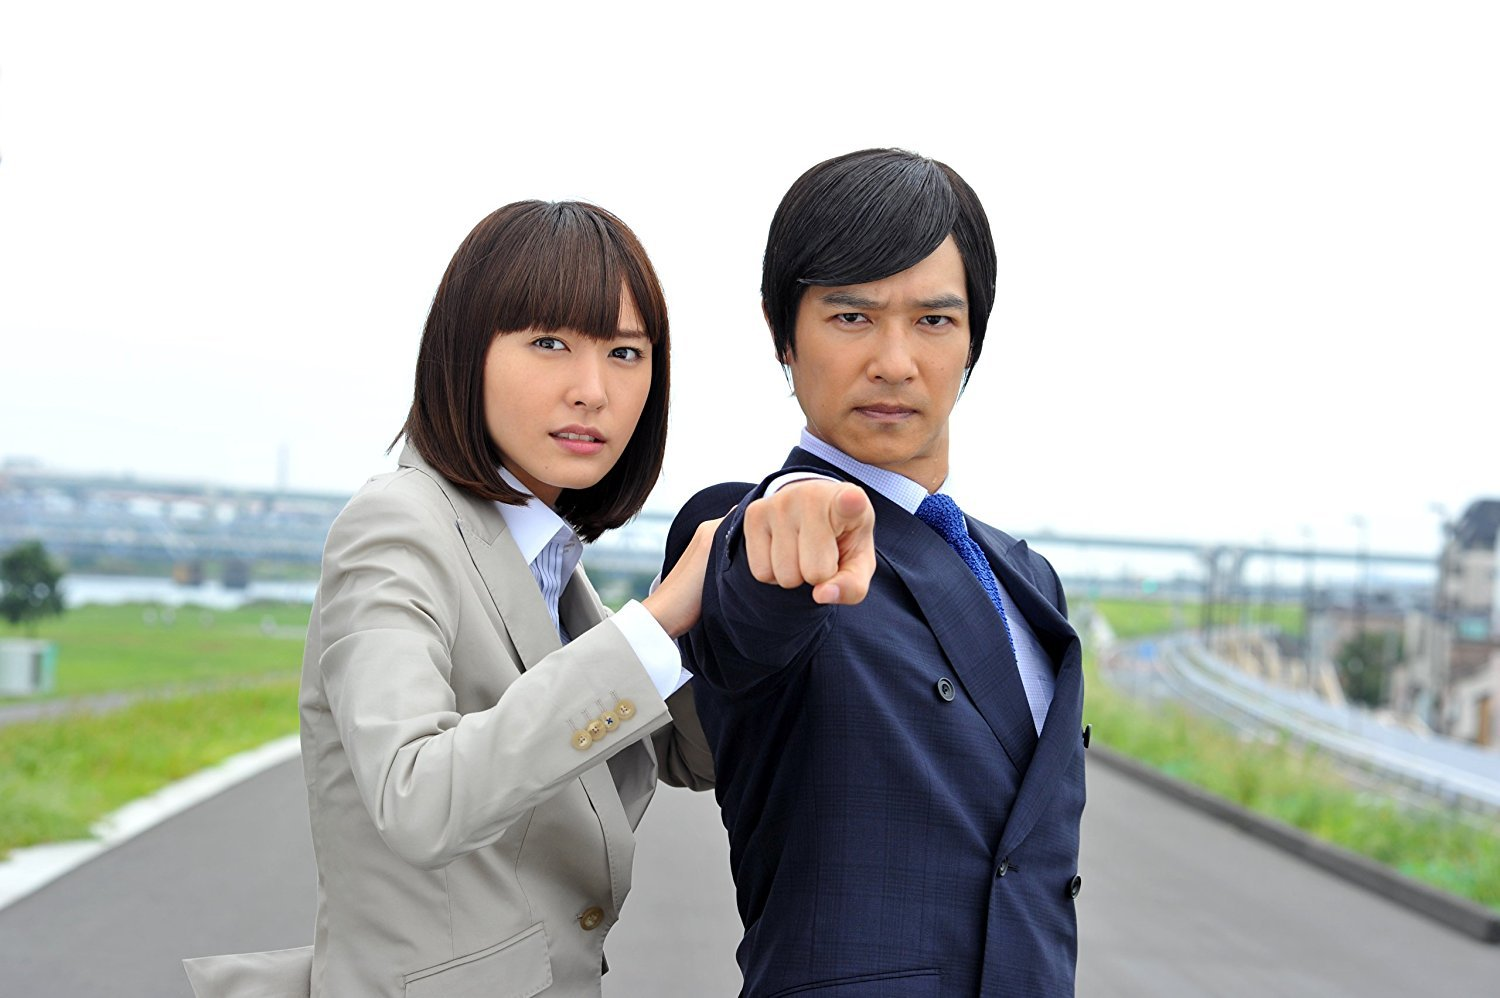 img 5a5460a5bb36e.png?resize=1200,630 - 大ヒット「リーガルハイ」は実は嘘だらけ?